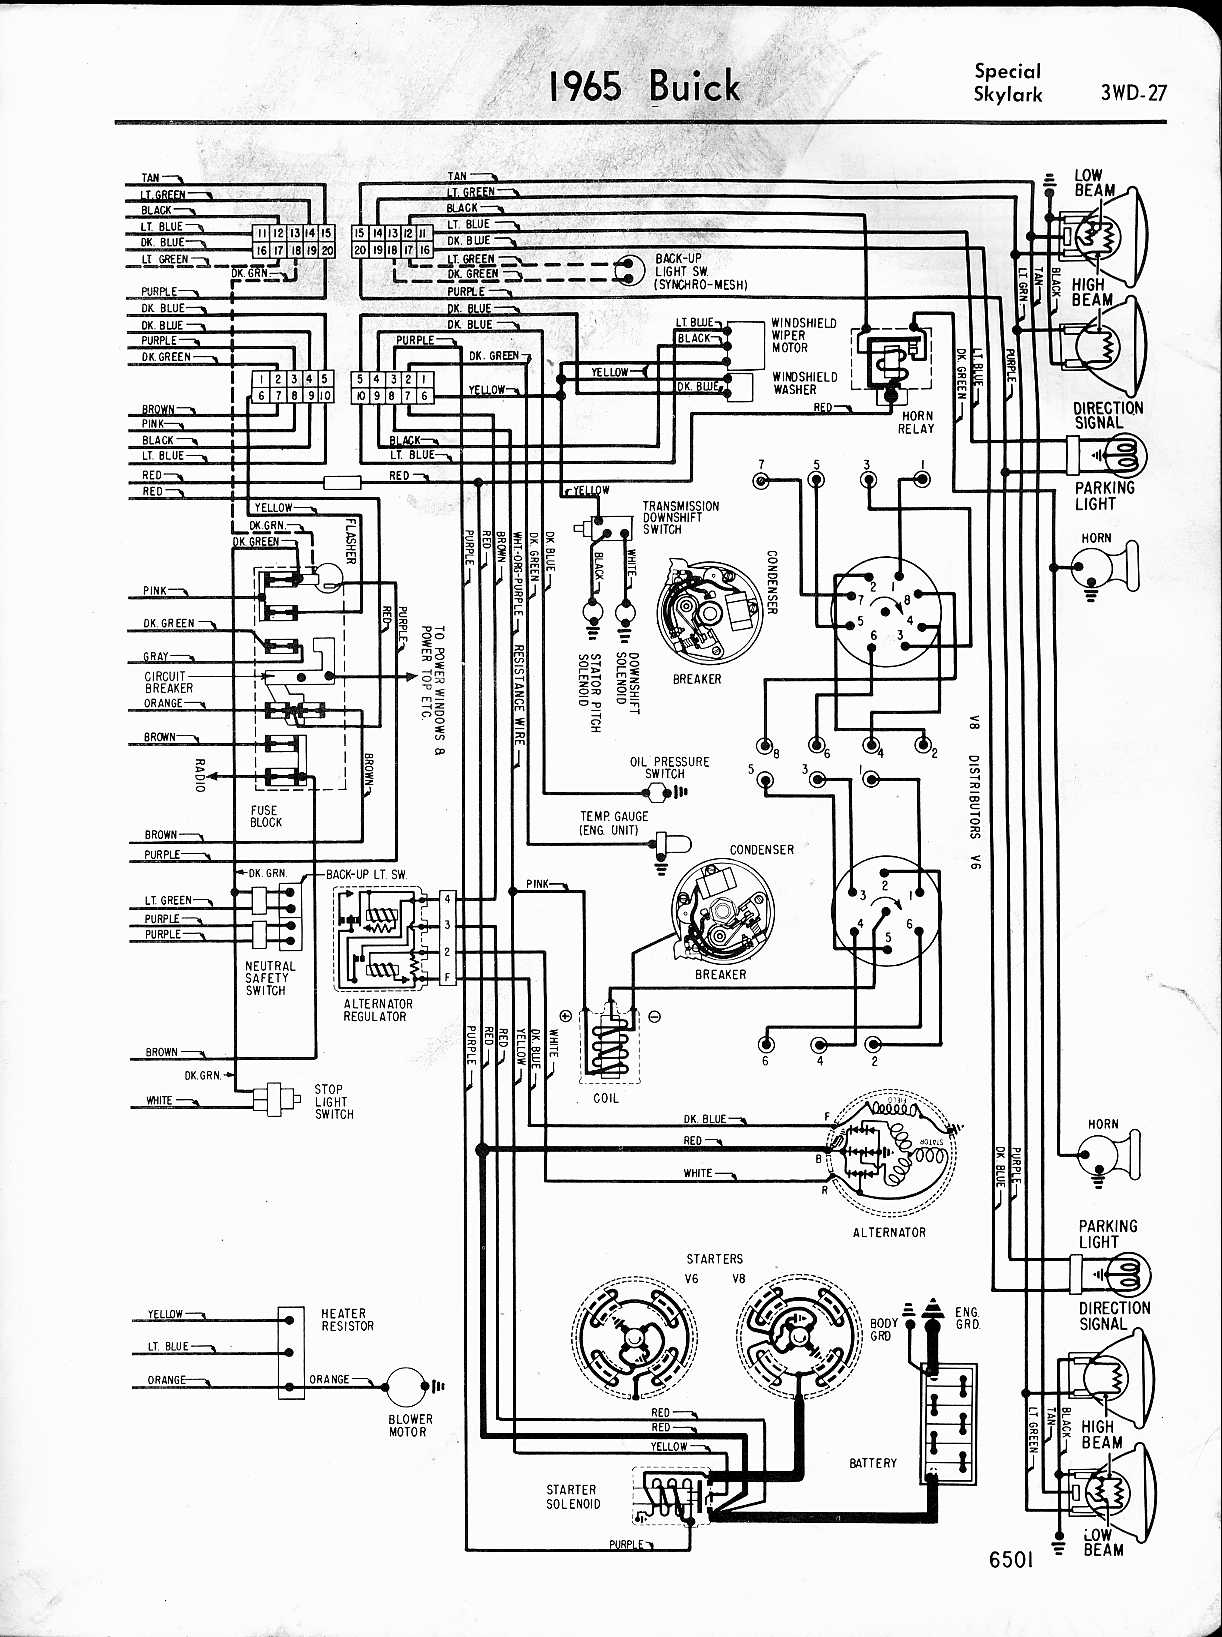 MWireBuic65_3WD 027 buick wiring diagrams 1957 1965 lq9 wiring harness diagram at bayanpartner.co